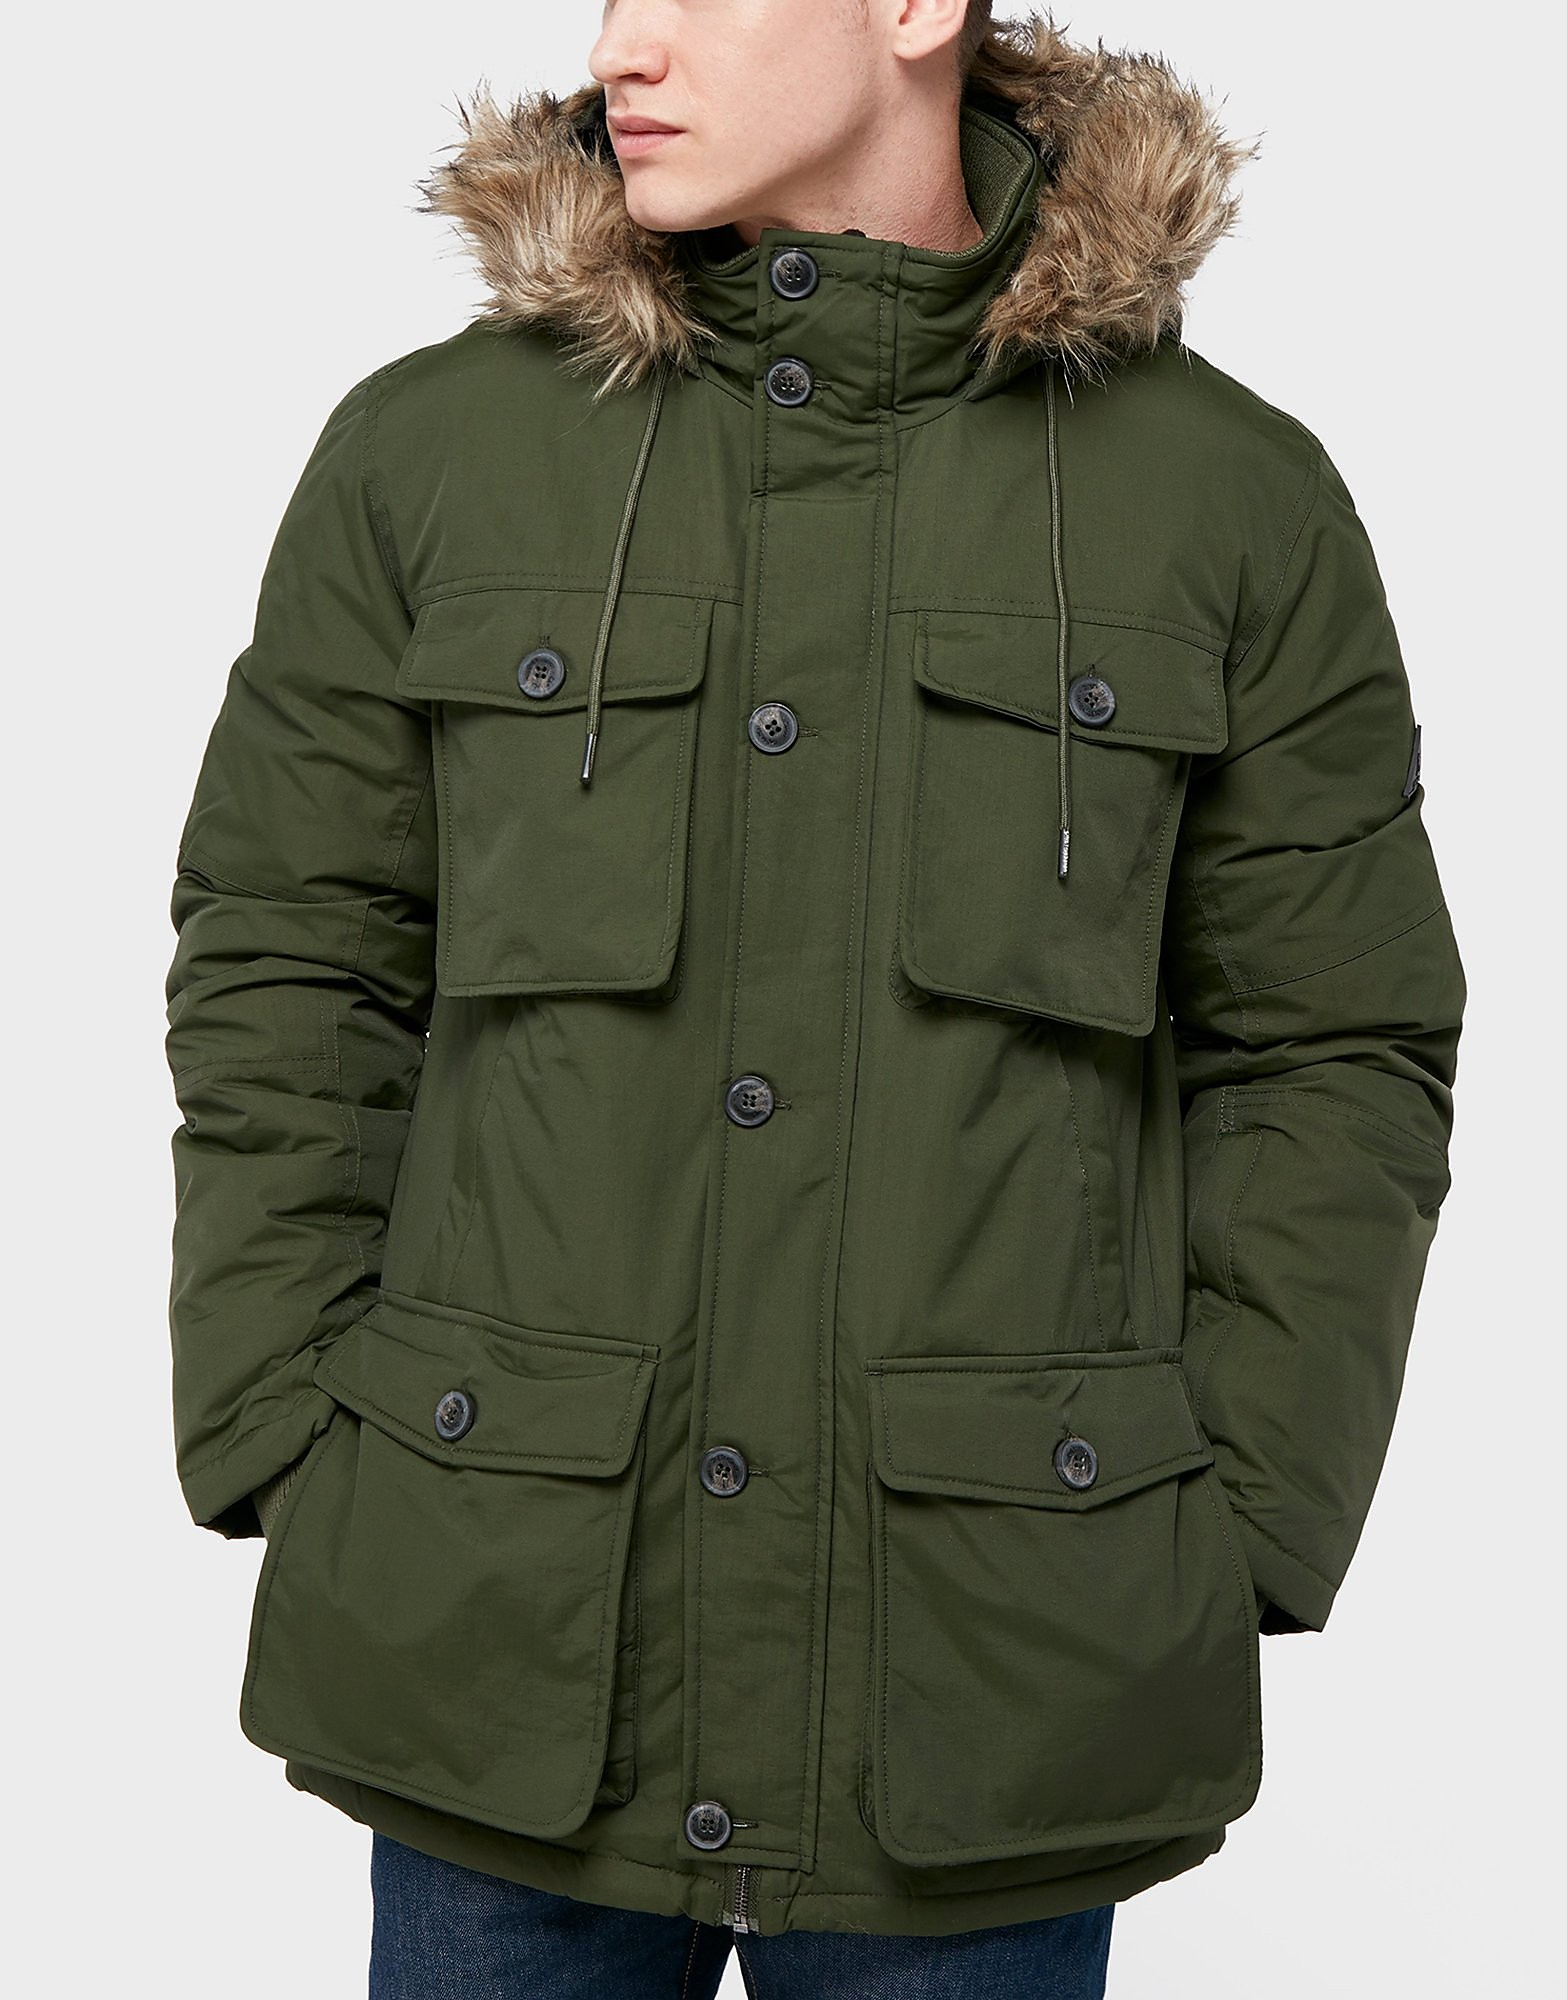 One True Saxon MultiPocket Parka Jacket  Exclusive  Green Green